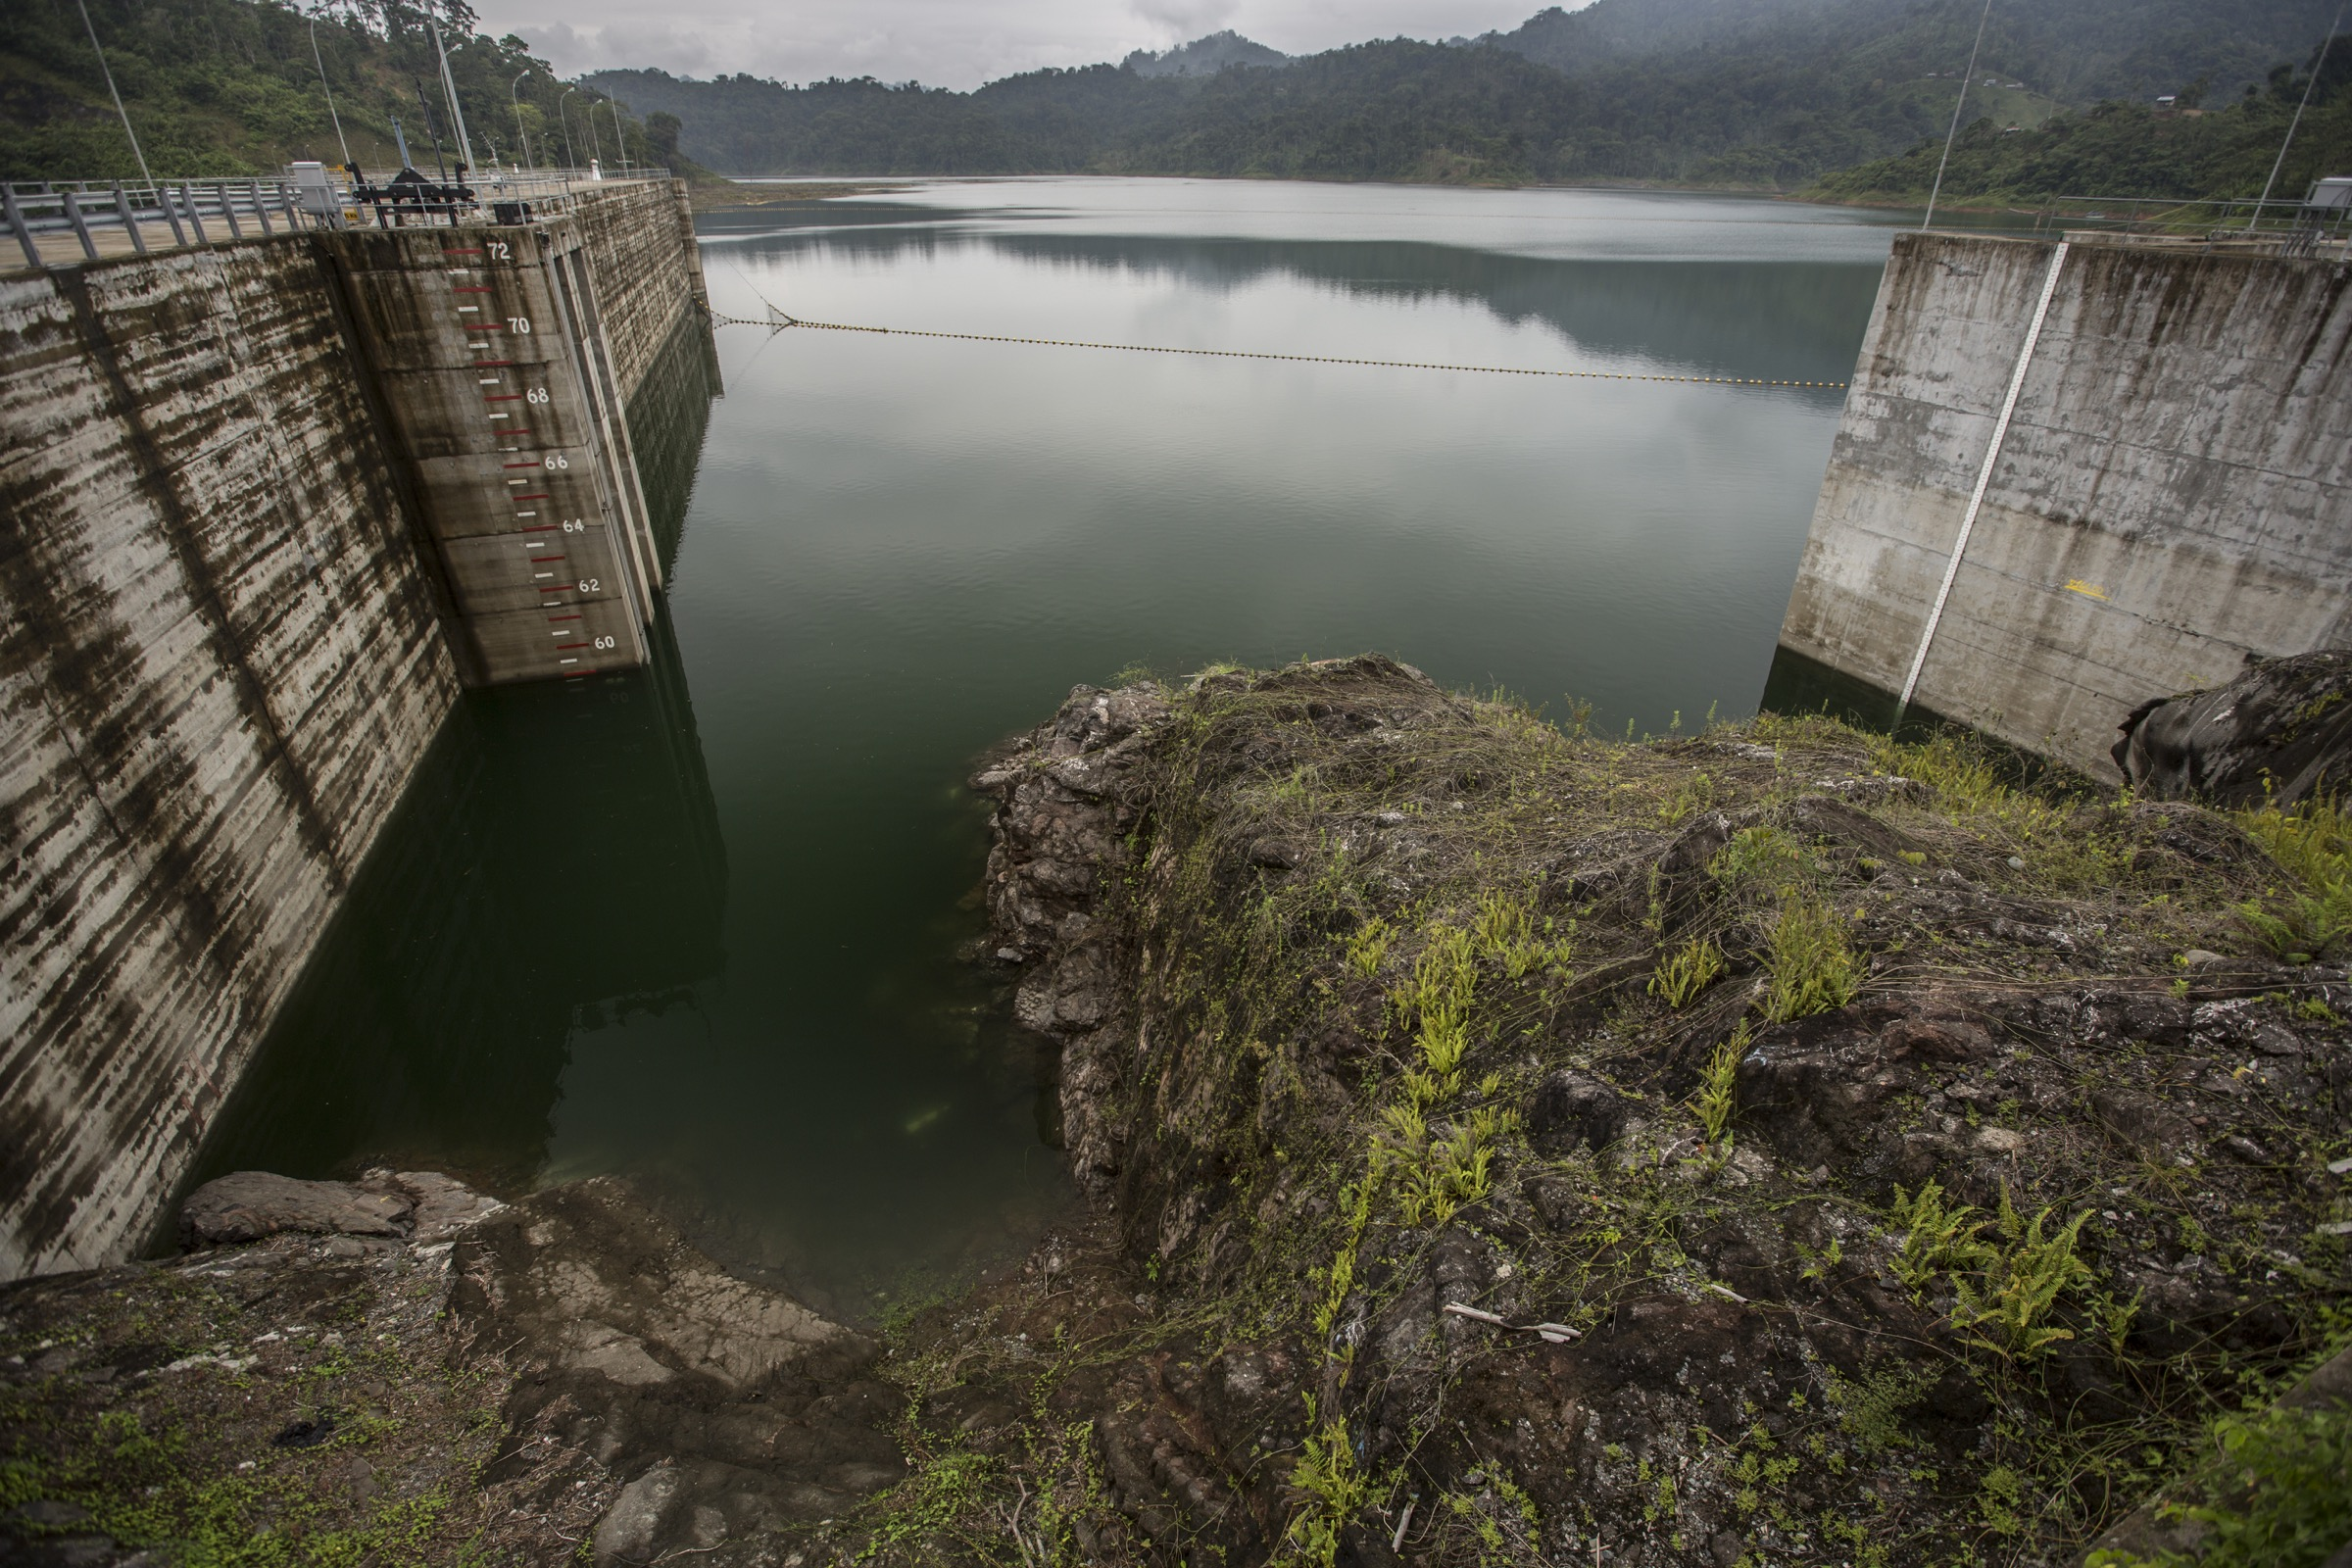 Ignoring concerns expressed by the United Nations, the Panamanian government  completed the construction of the Changuinola I Dam without conducting an official environmental assessment of the project's impact.